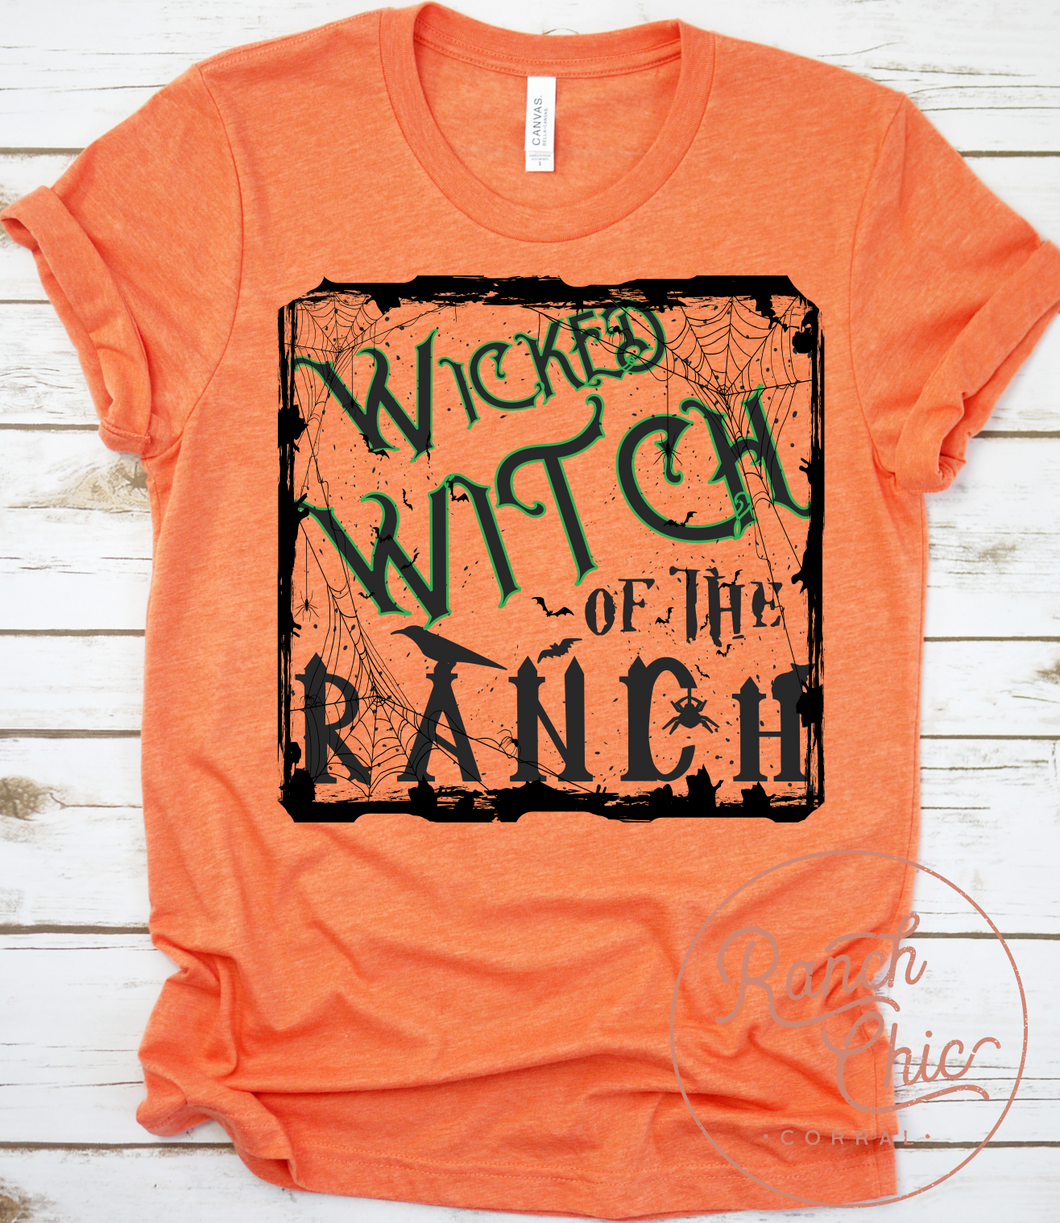 Wicked Witch Ranch